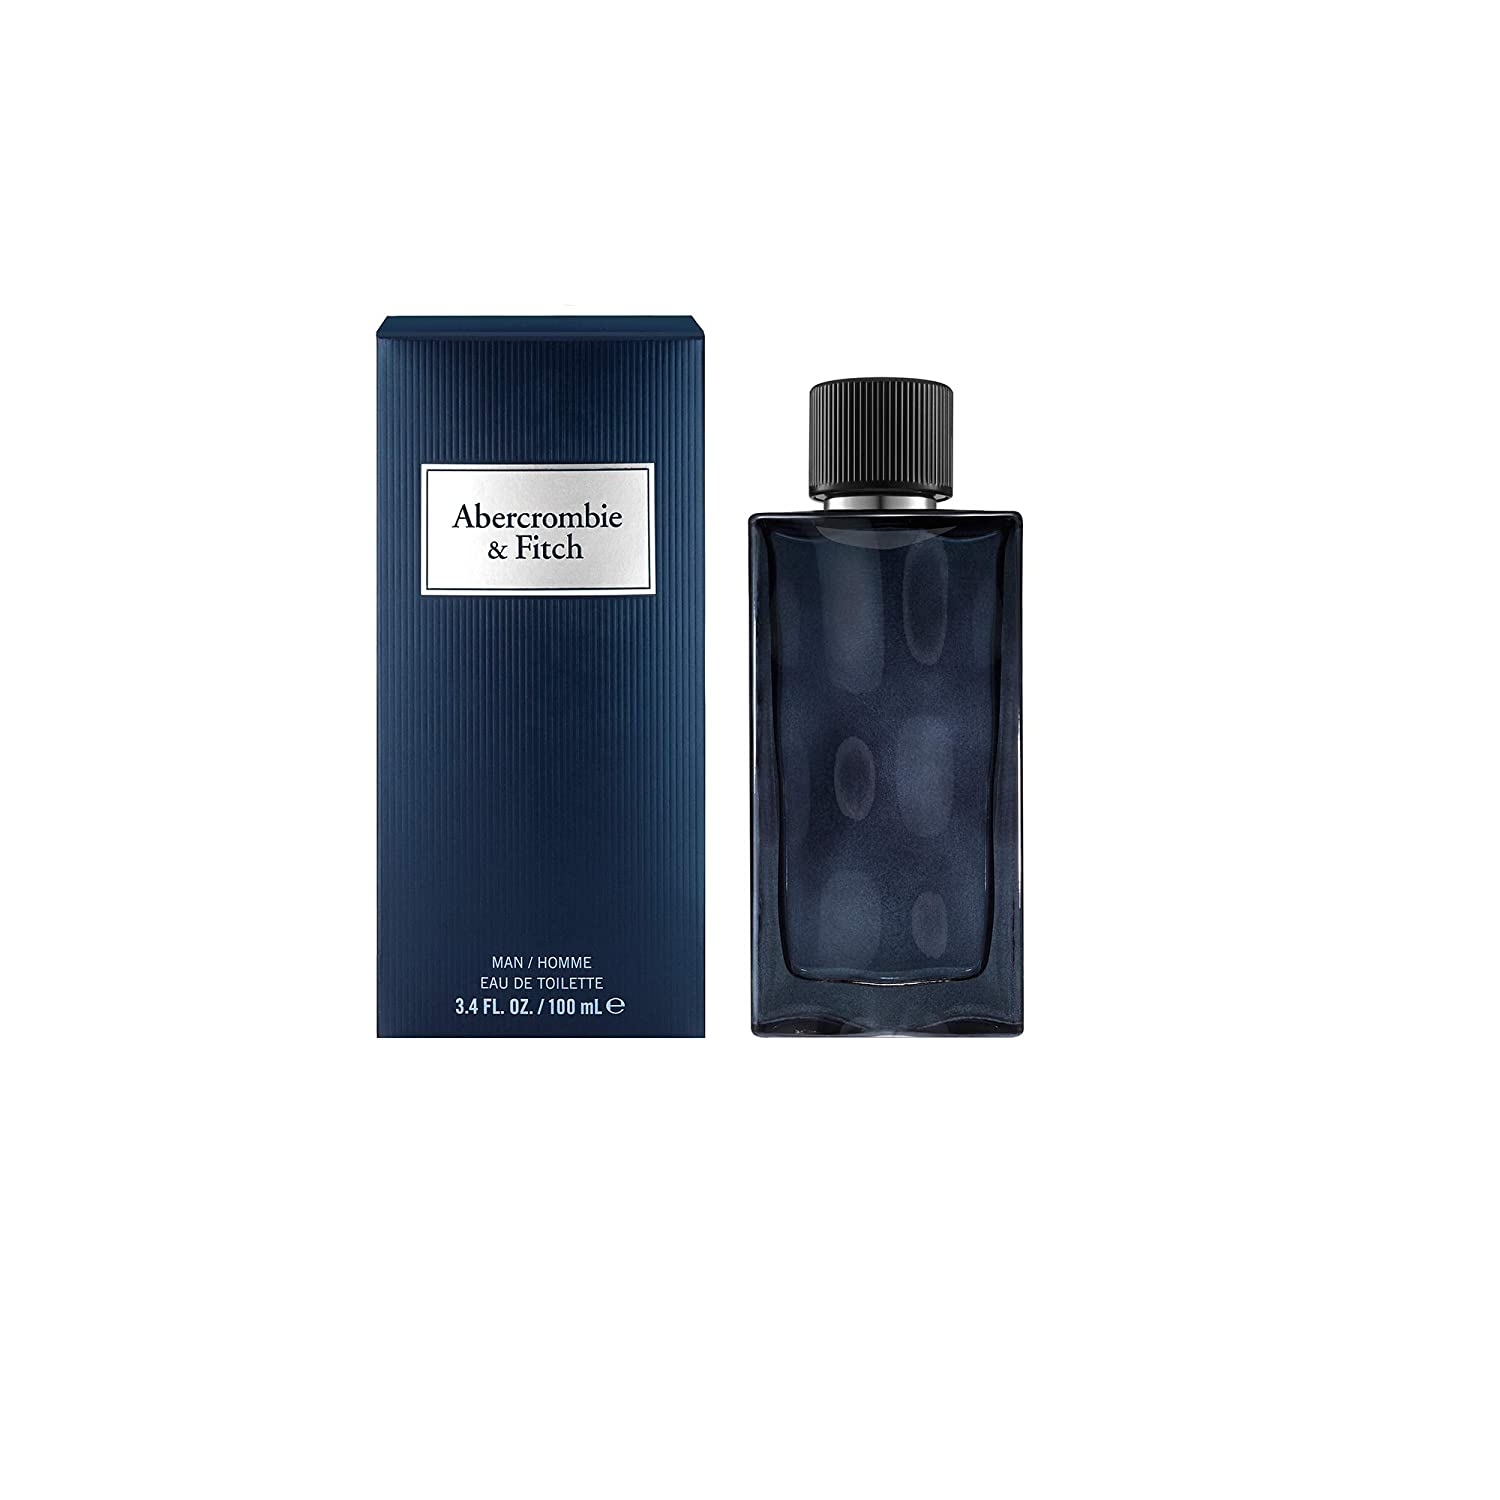 7ecdb7bdc Abercombie and Fitch Abercrombie & Fitch First Instinct Blue For Men Eau de  Toilette, 100ml: Amazon.co.uk: Luxury Beauty